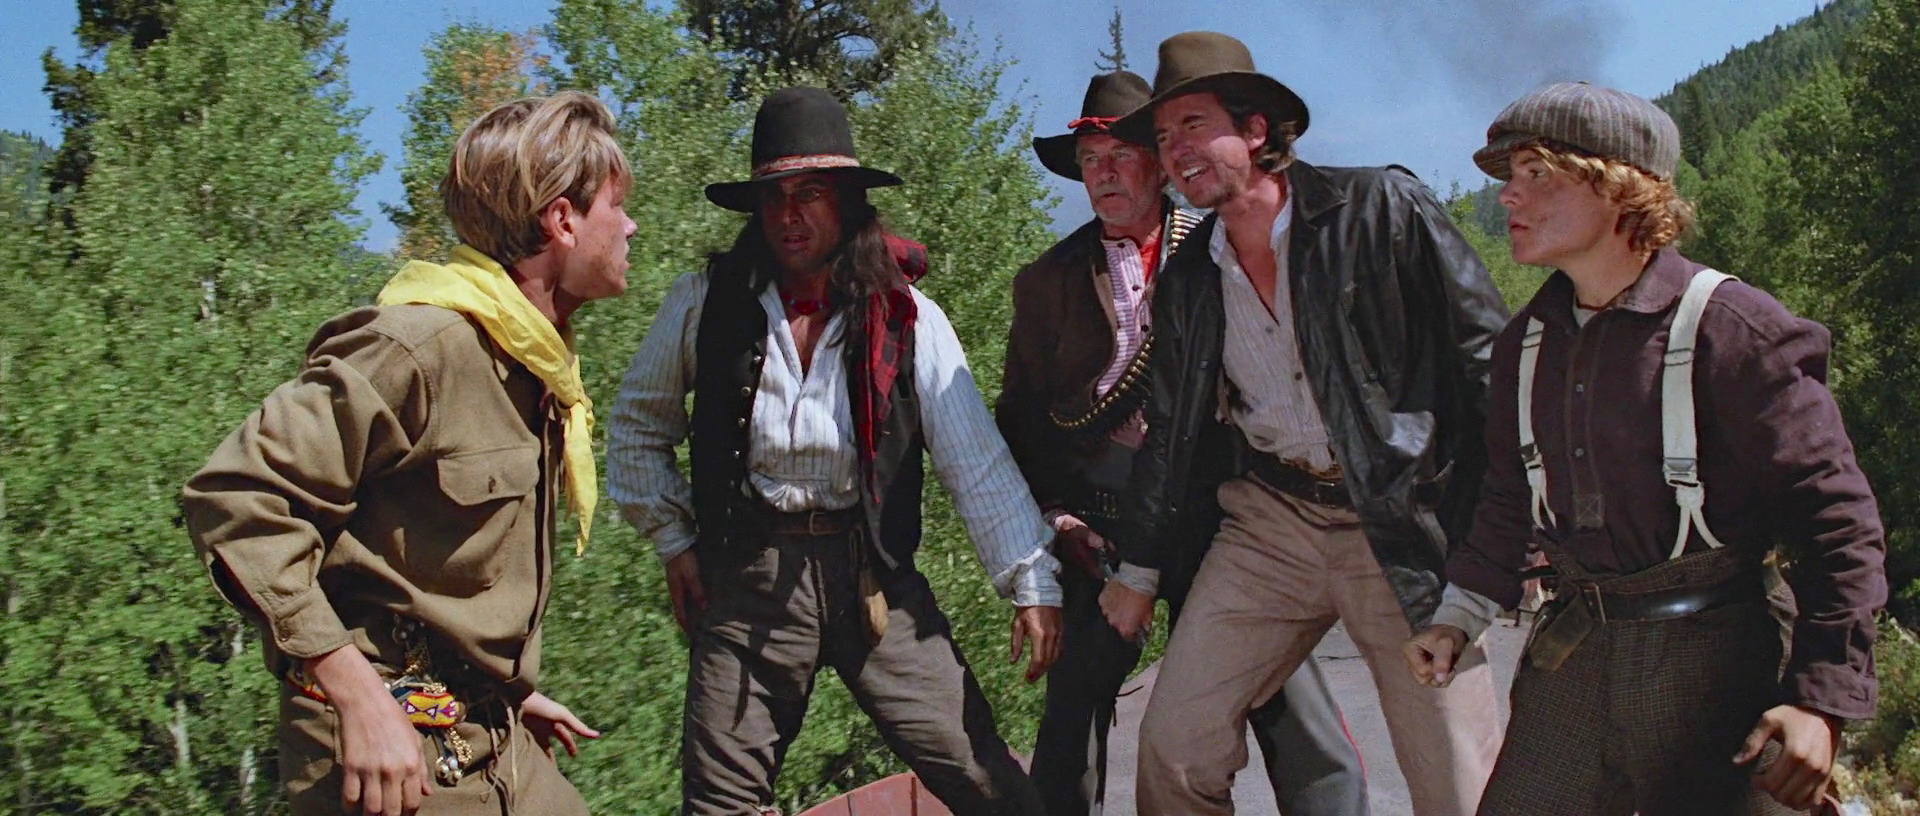 River Phoenix, Vince Deadrick Sr., Bradley Gregg, Jeff O'Haco, and Richard Young in Indiana Jones and the Last Crusade (1989)